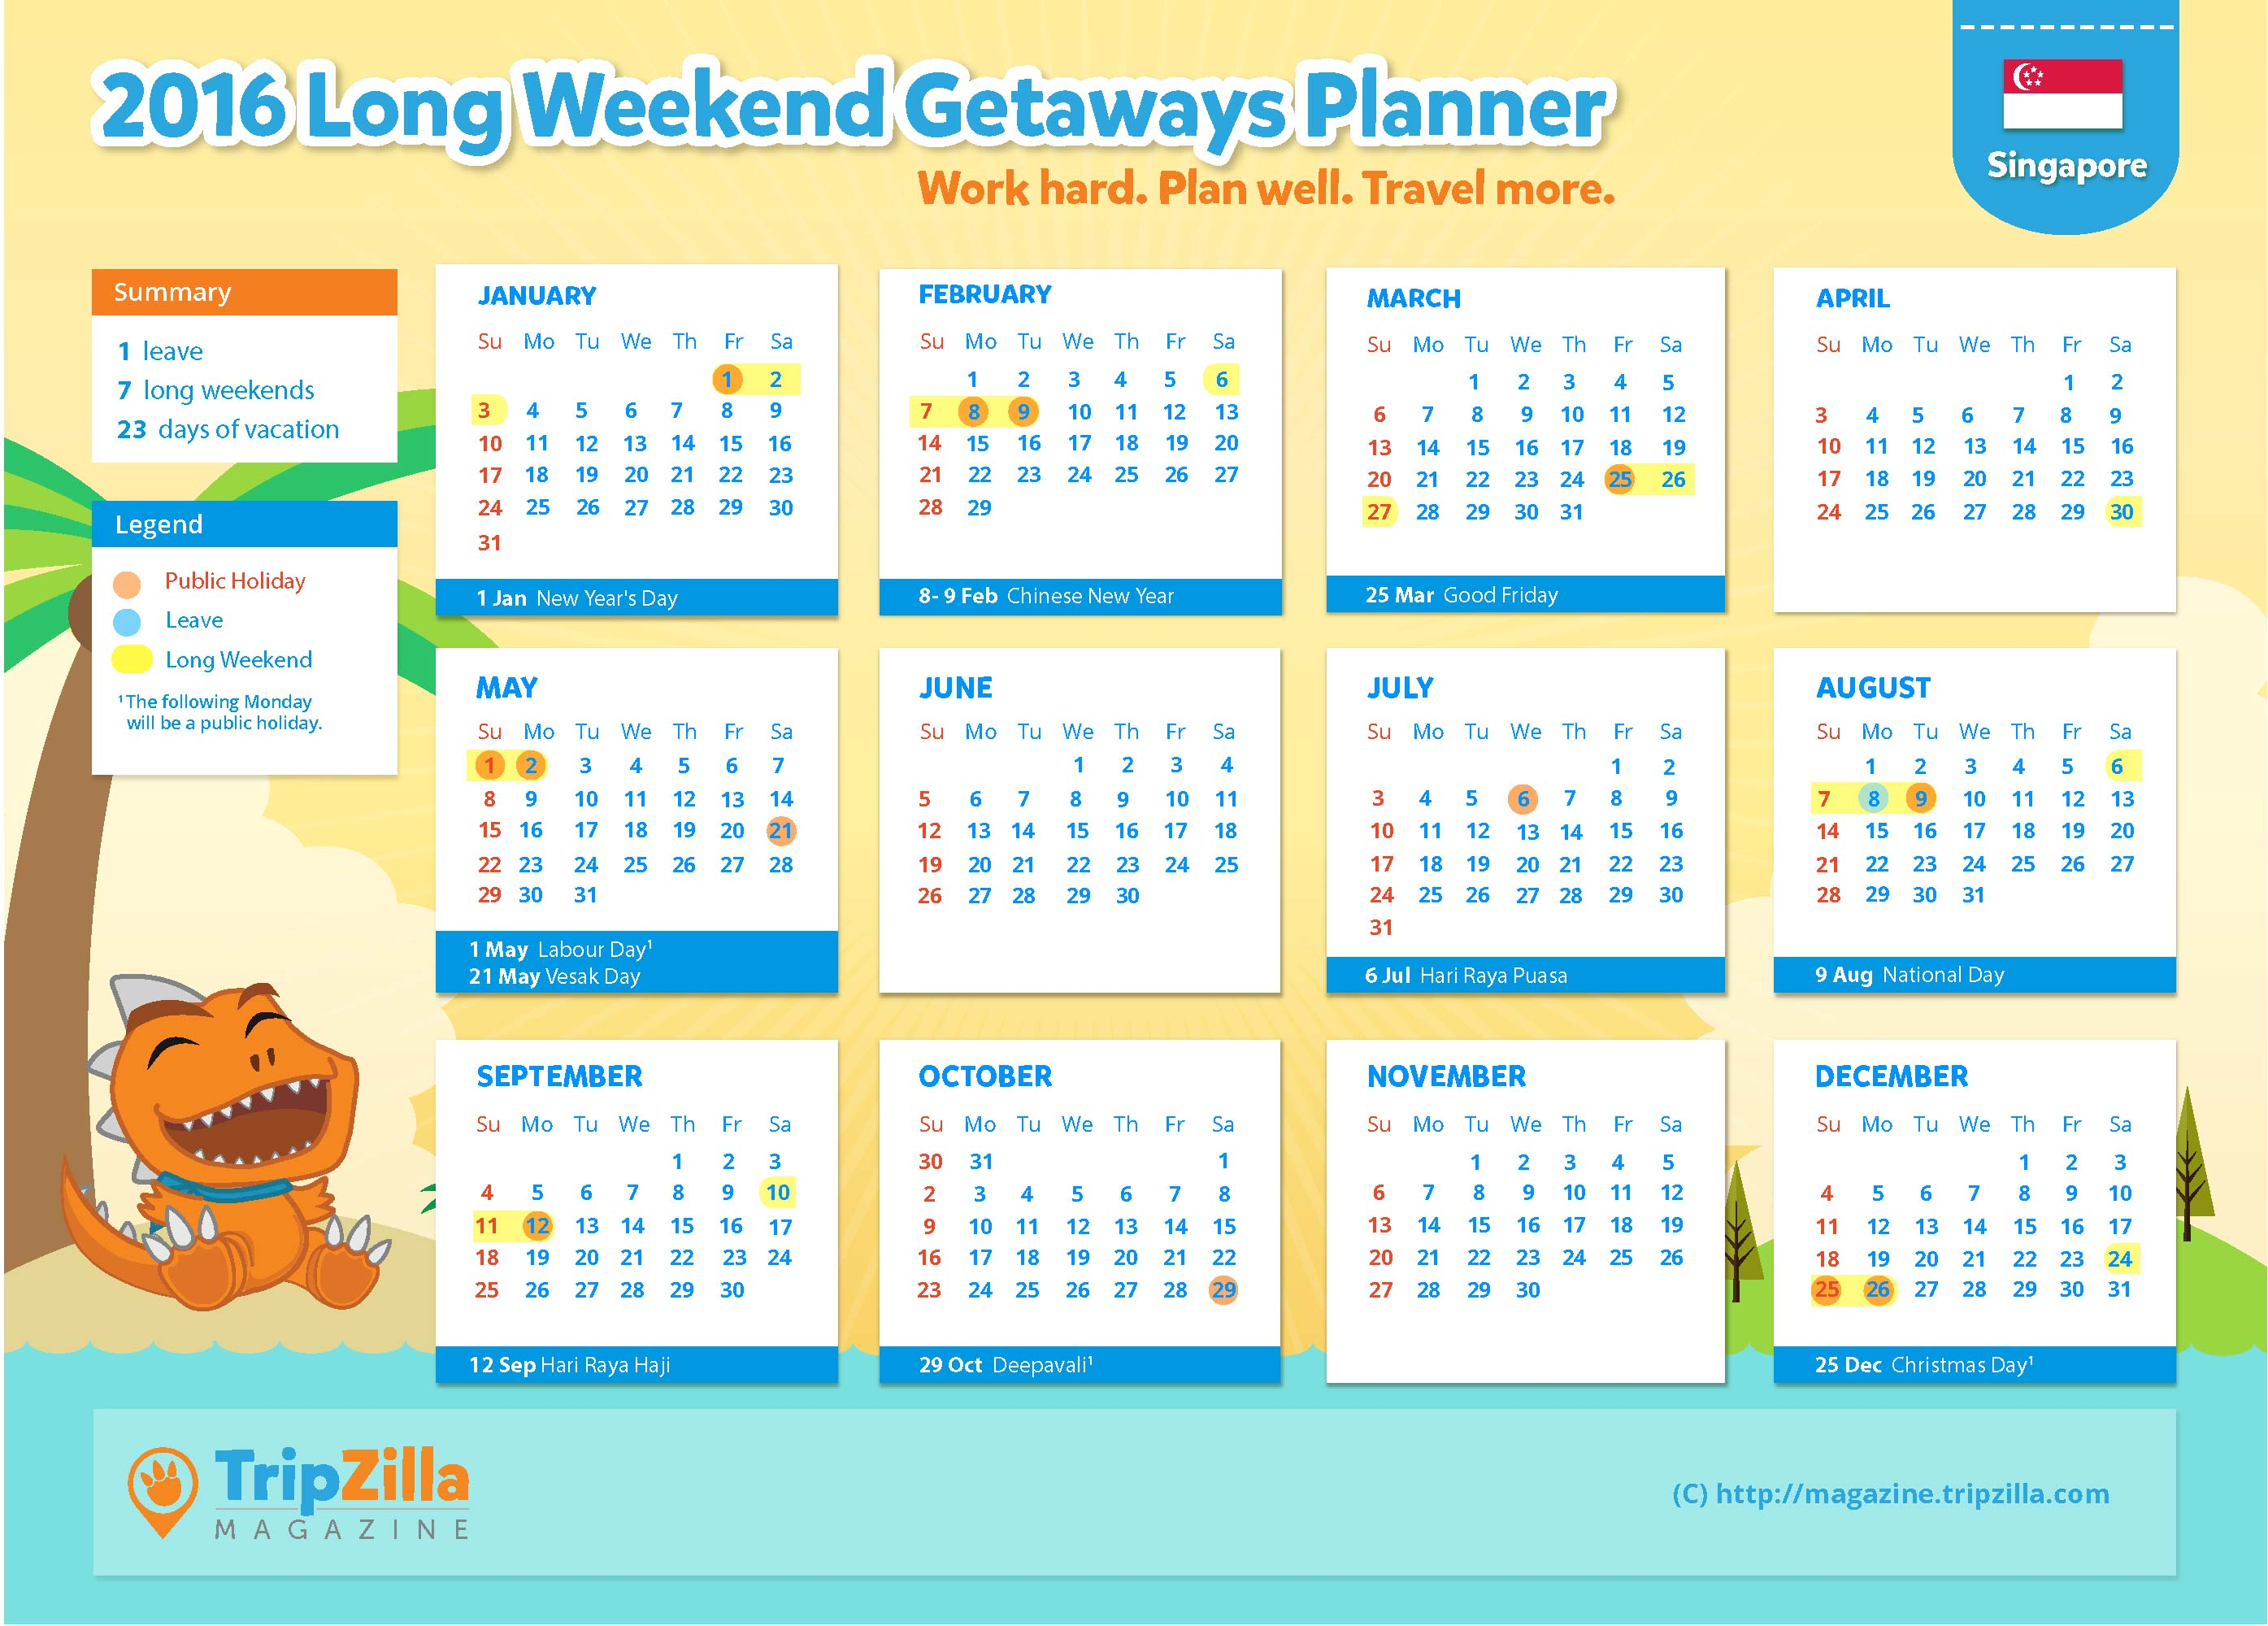 Short Weekend Getaway Places for Year 2016 - TheGuyTravel